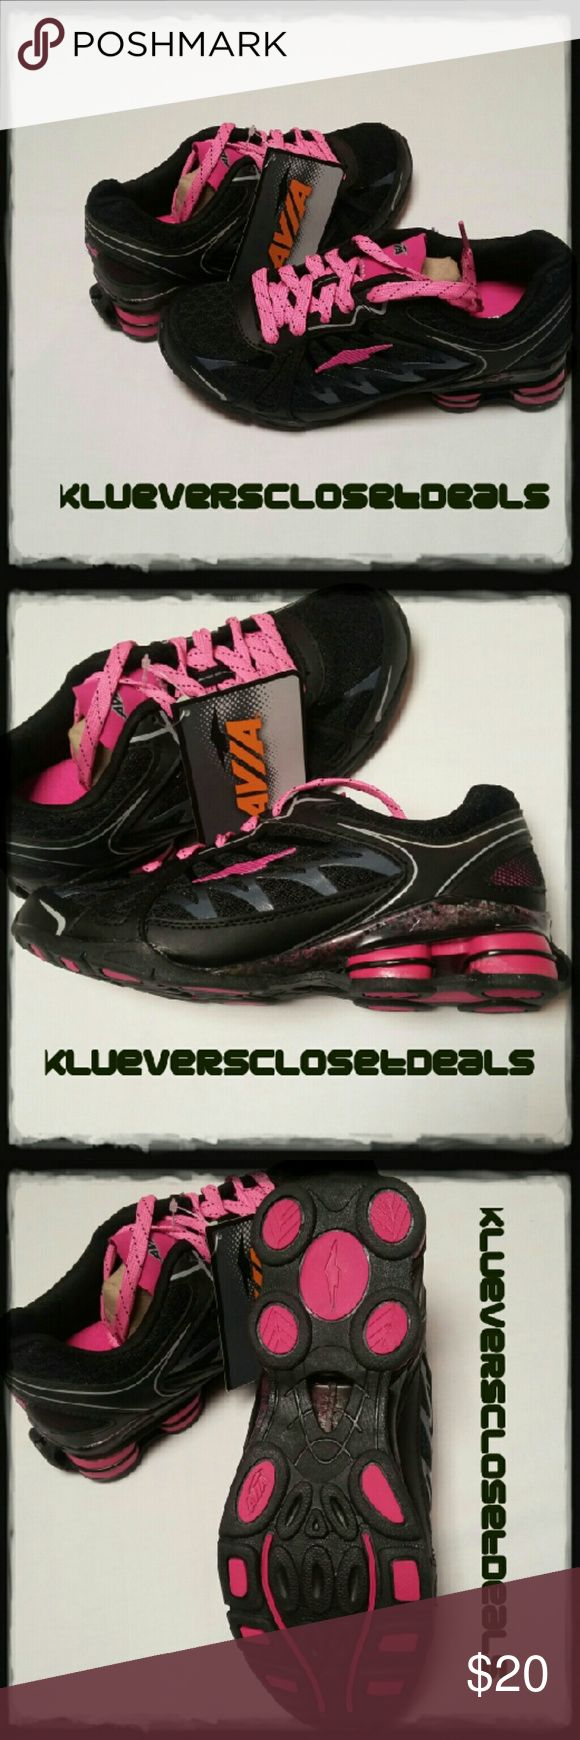 AVILA-FLURRY ATHLETIC RUNNING SHOES SZ 6.5 BRAND NEW. BLK/PINK. LEATHER/MESH Avia Shoes Athletic Shoes